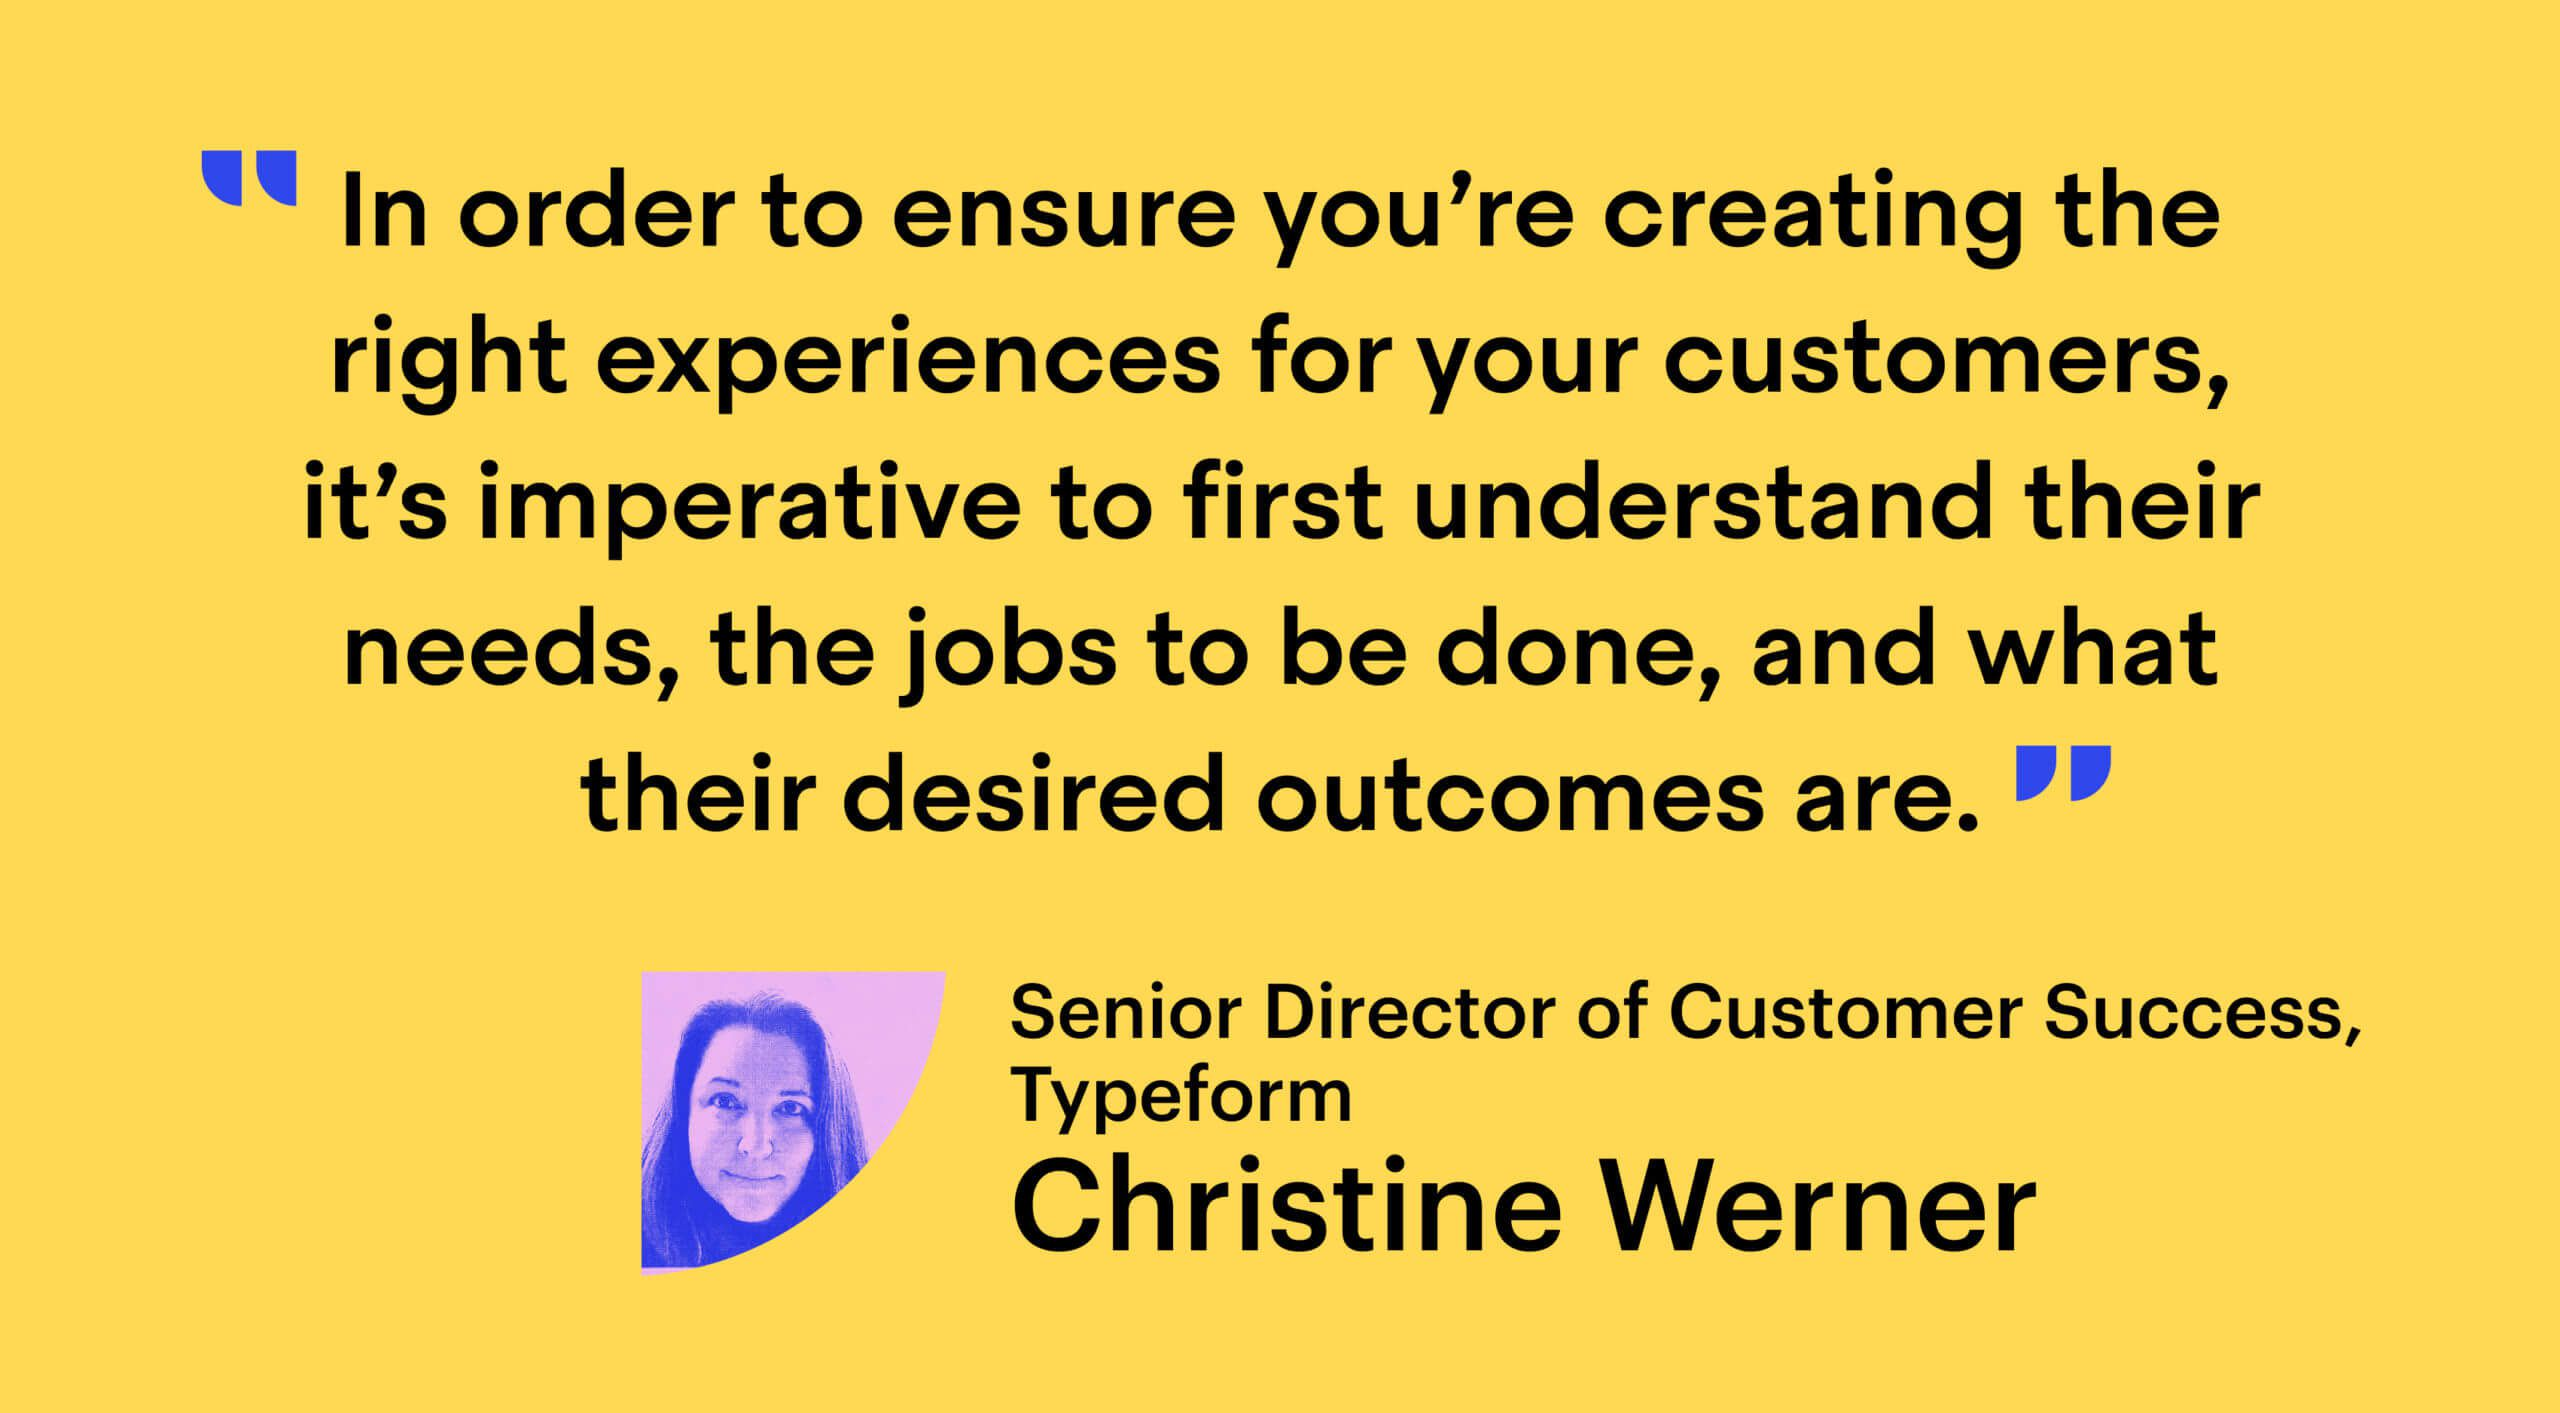 """Quote from Christine Werner, Senior Director of Customer Success at Typeform: """"In order to ensure you're creating the right experiences for your customers, it's imperative to first understand their needs, the jobs to be done, and what their desired outcomes are."""""""